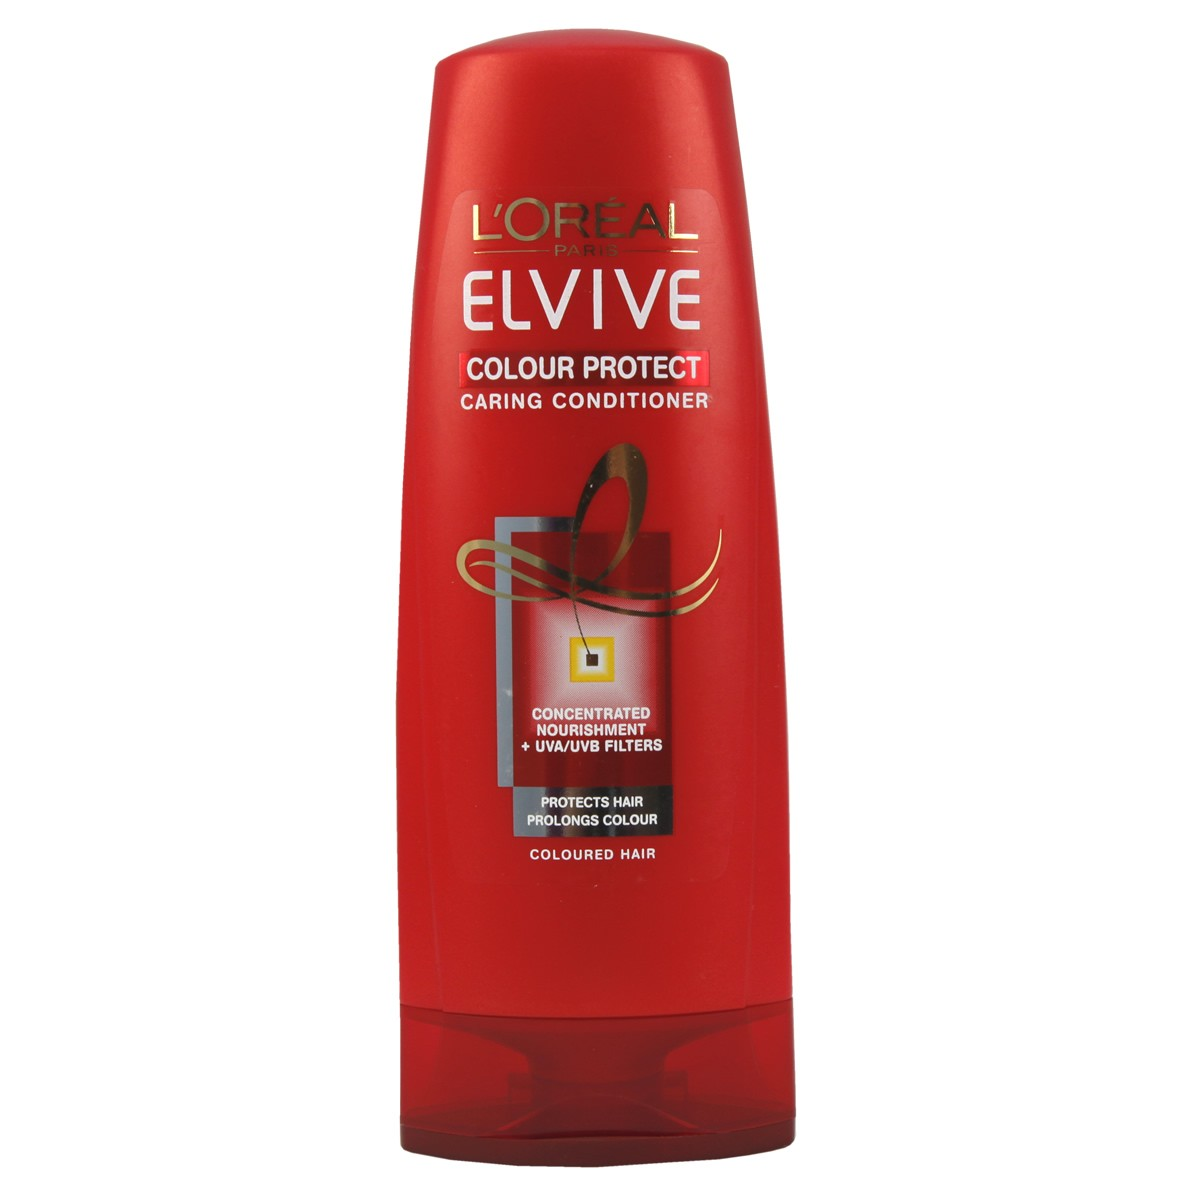 L'Oreal Paris Elvive Colour Protect Conditioner